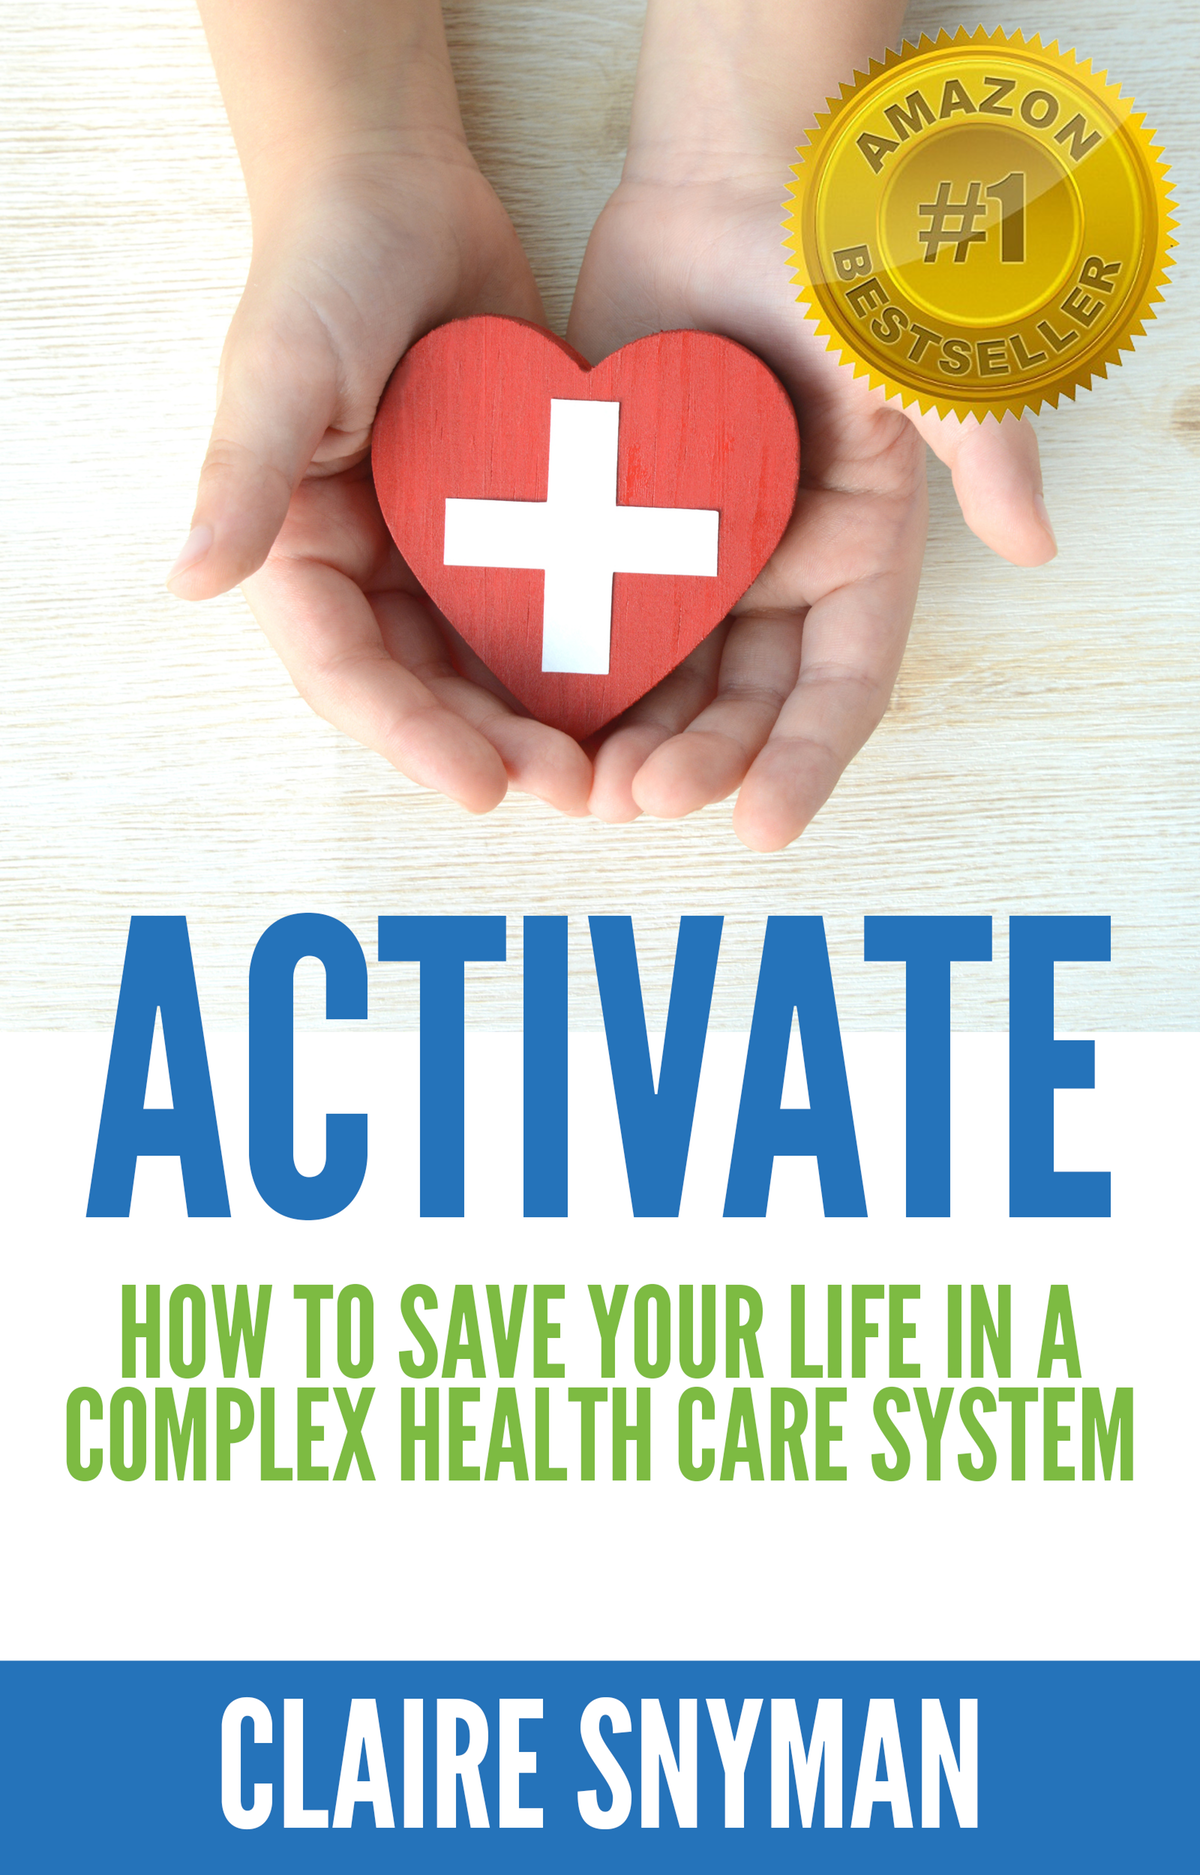 Add logo to existing ACTIVATE book cover